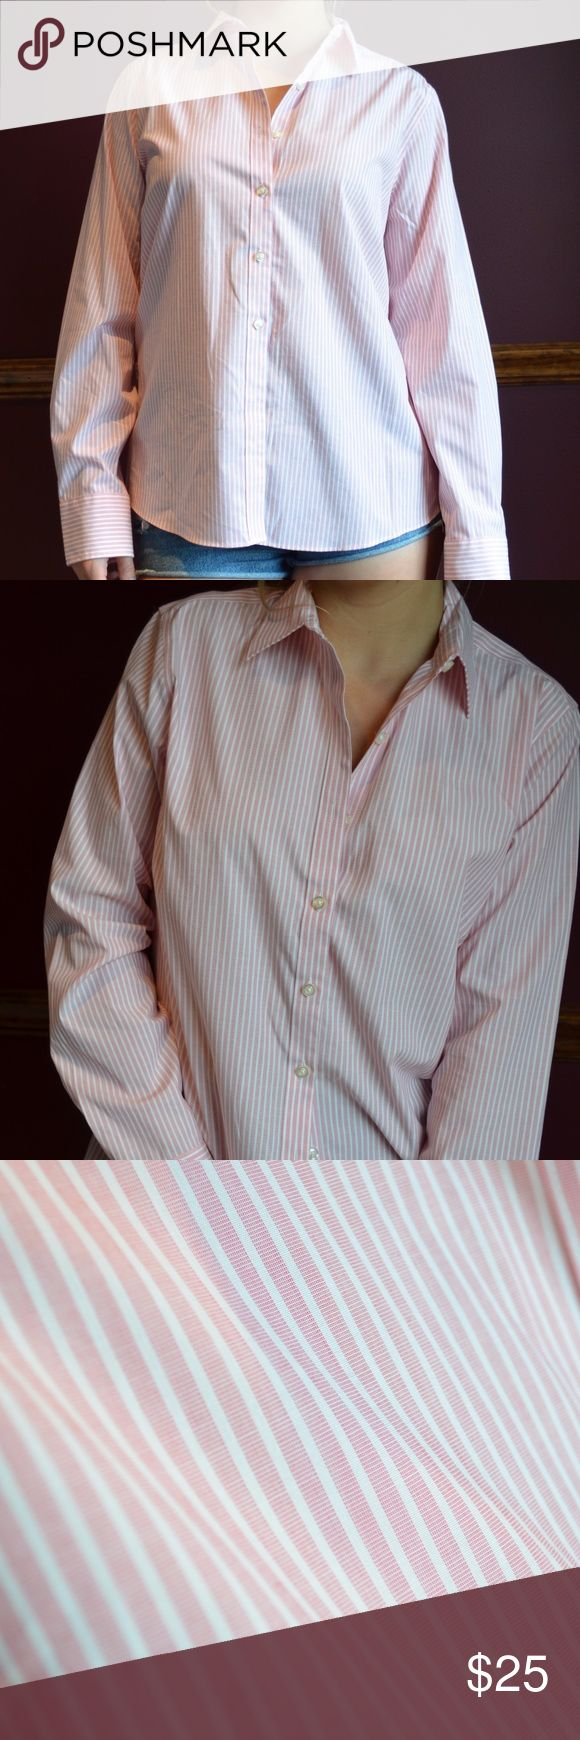 Land's End Women's Button Down Women's Button Down; 96% cotton, 4% spandex; Light pink with thin white, vertical stripes Land's End Tops Button Down Shirts